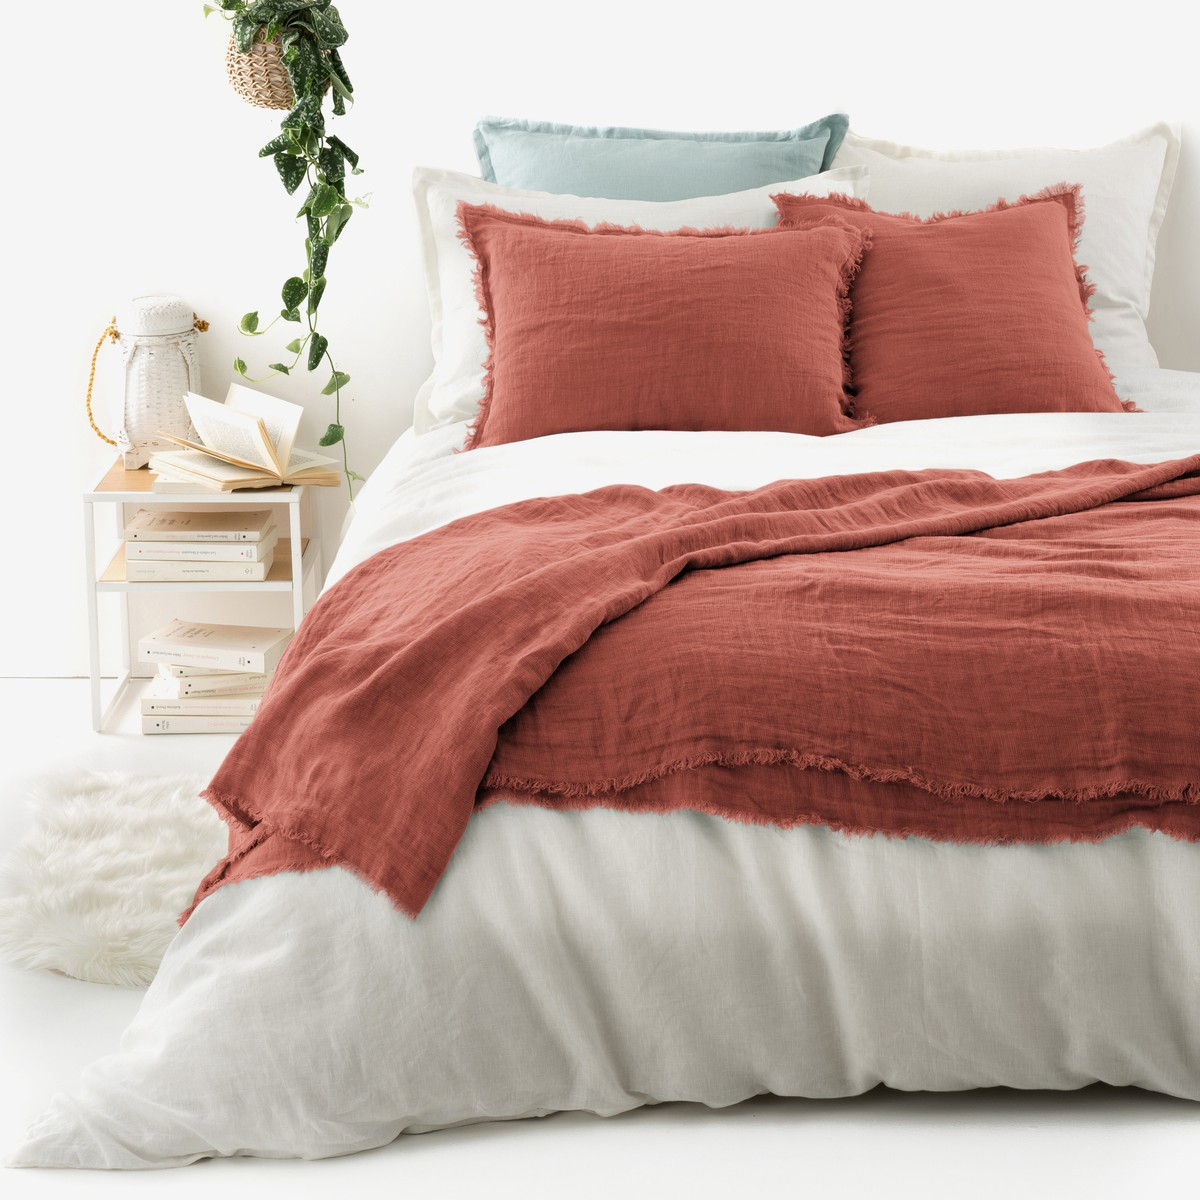 Home & Furniture Sale - Enjoy up to 70% off curtains, duvet covers, bed sheets and more in this fabulous collection of homeware from the La Redoute. Discover gorgeous tablecloths, pillowcases, towels, cushion covers and everything else you'll need to bring French style to your home at unbeatable prices.